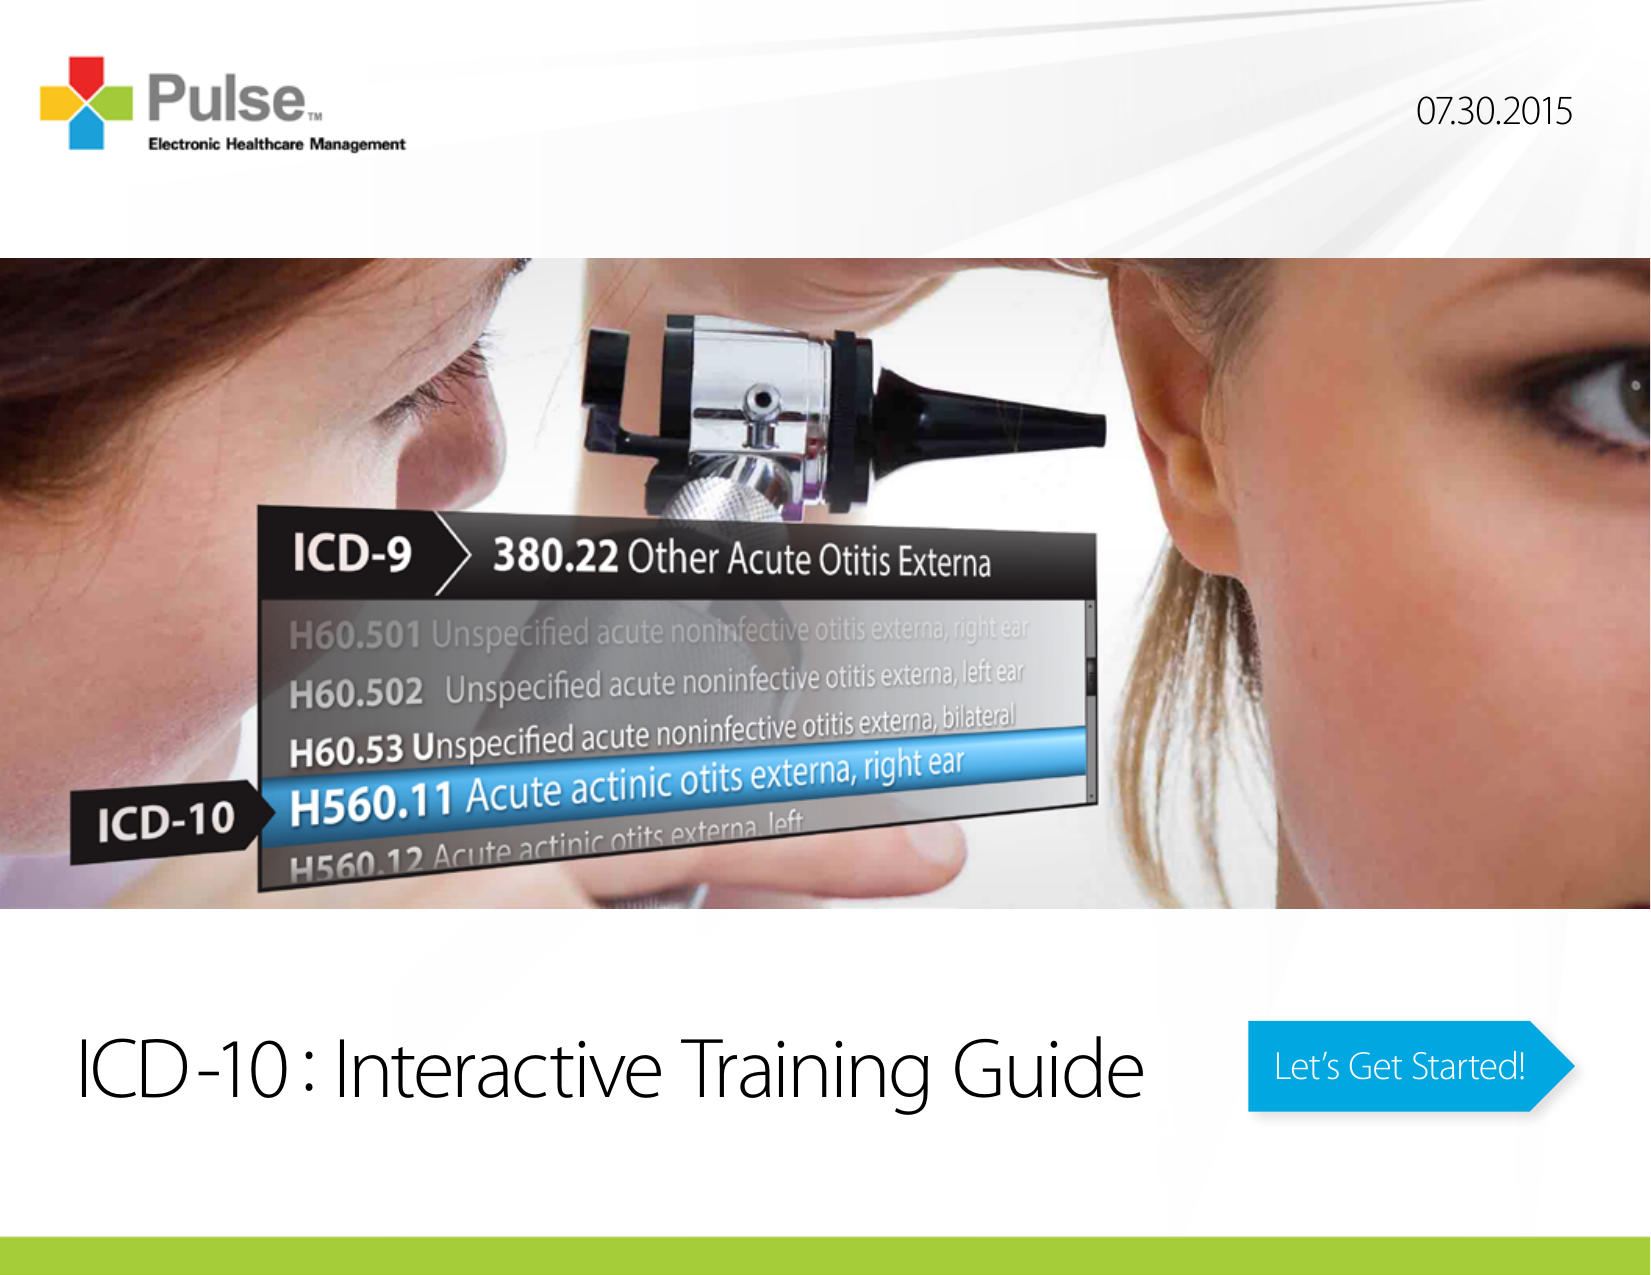 ICD-10 : Interactive Training Guide